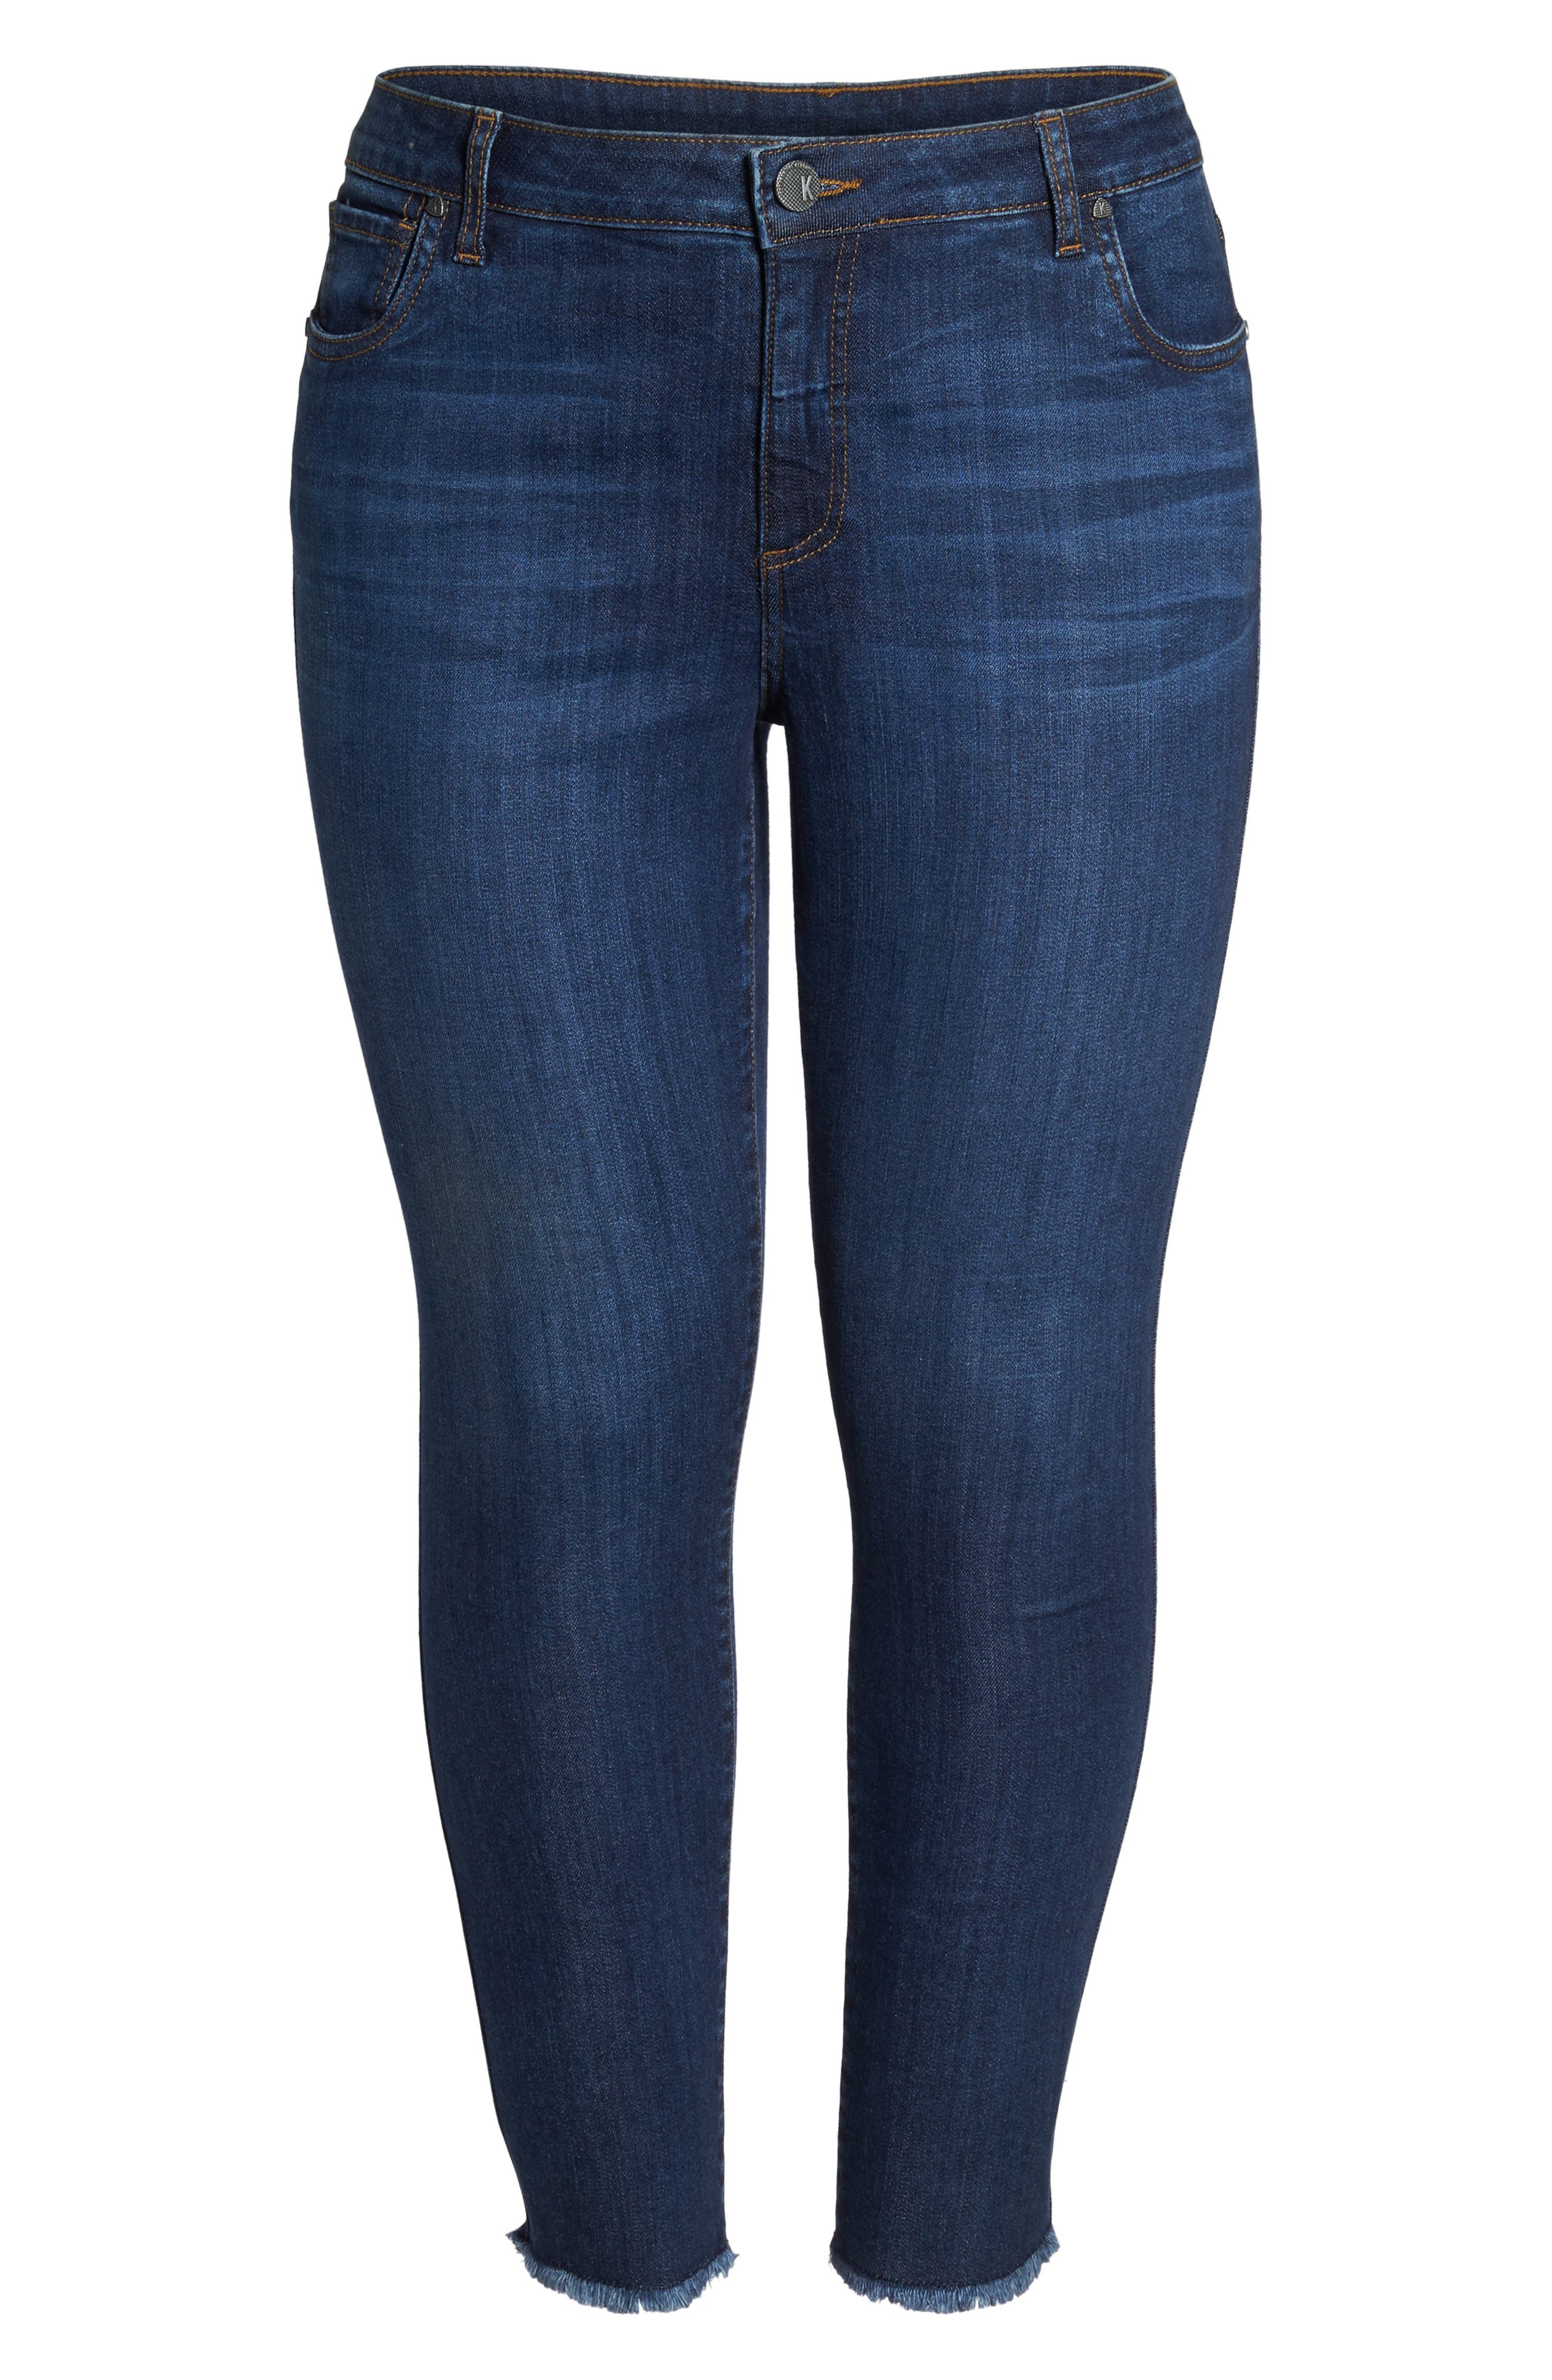 Reese Frayed Ankle Jeans,                             Alternate thumbnail 8, color,                             Upheld